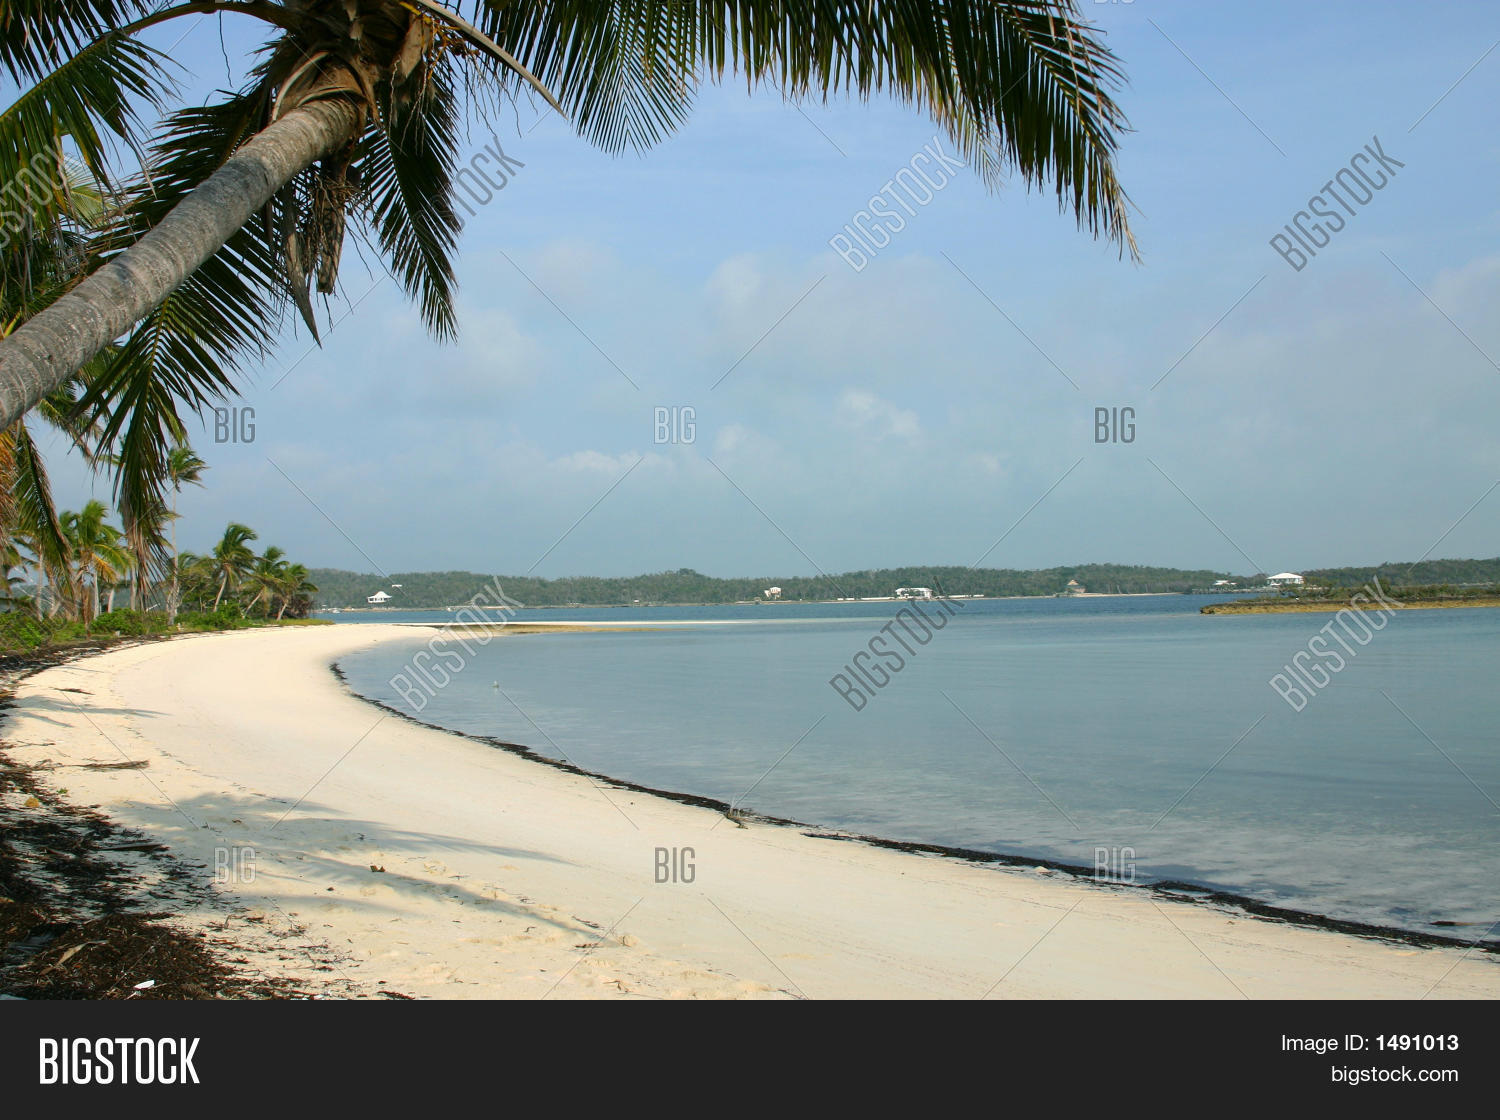 abaco,bahamas,beach,cay,elbow,hopetown,island,key,ocean,palm,sailing,sand,sea,tide,tree,tropical,water,wave,white